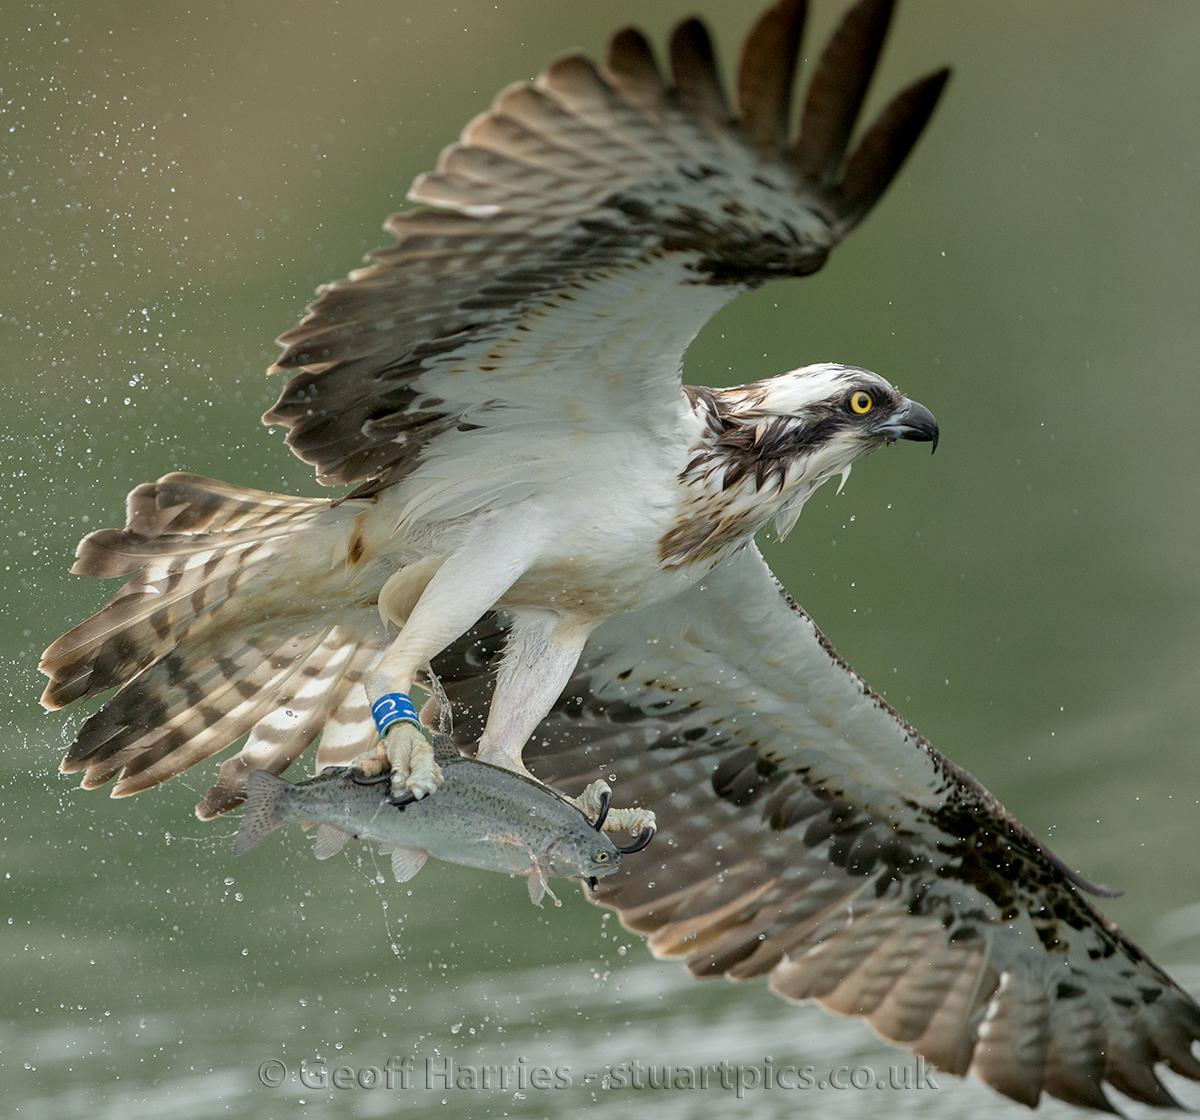 Kites And Ospreys Stuartpics Co Uk Photography By